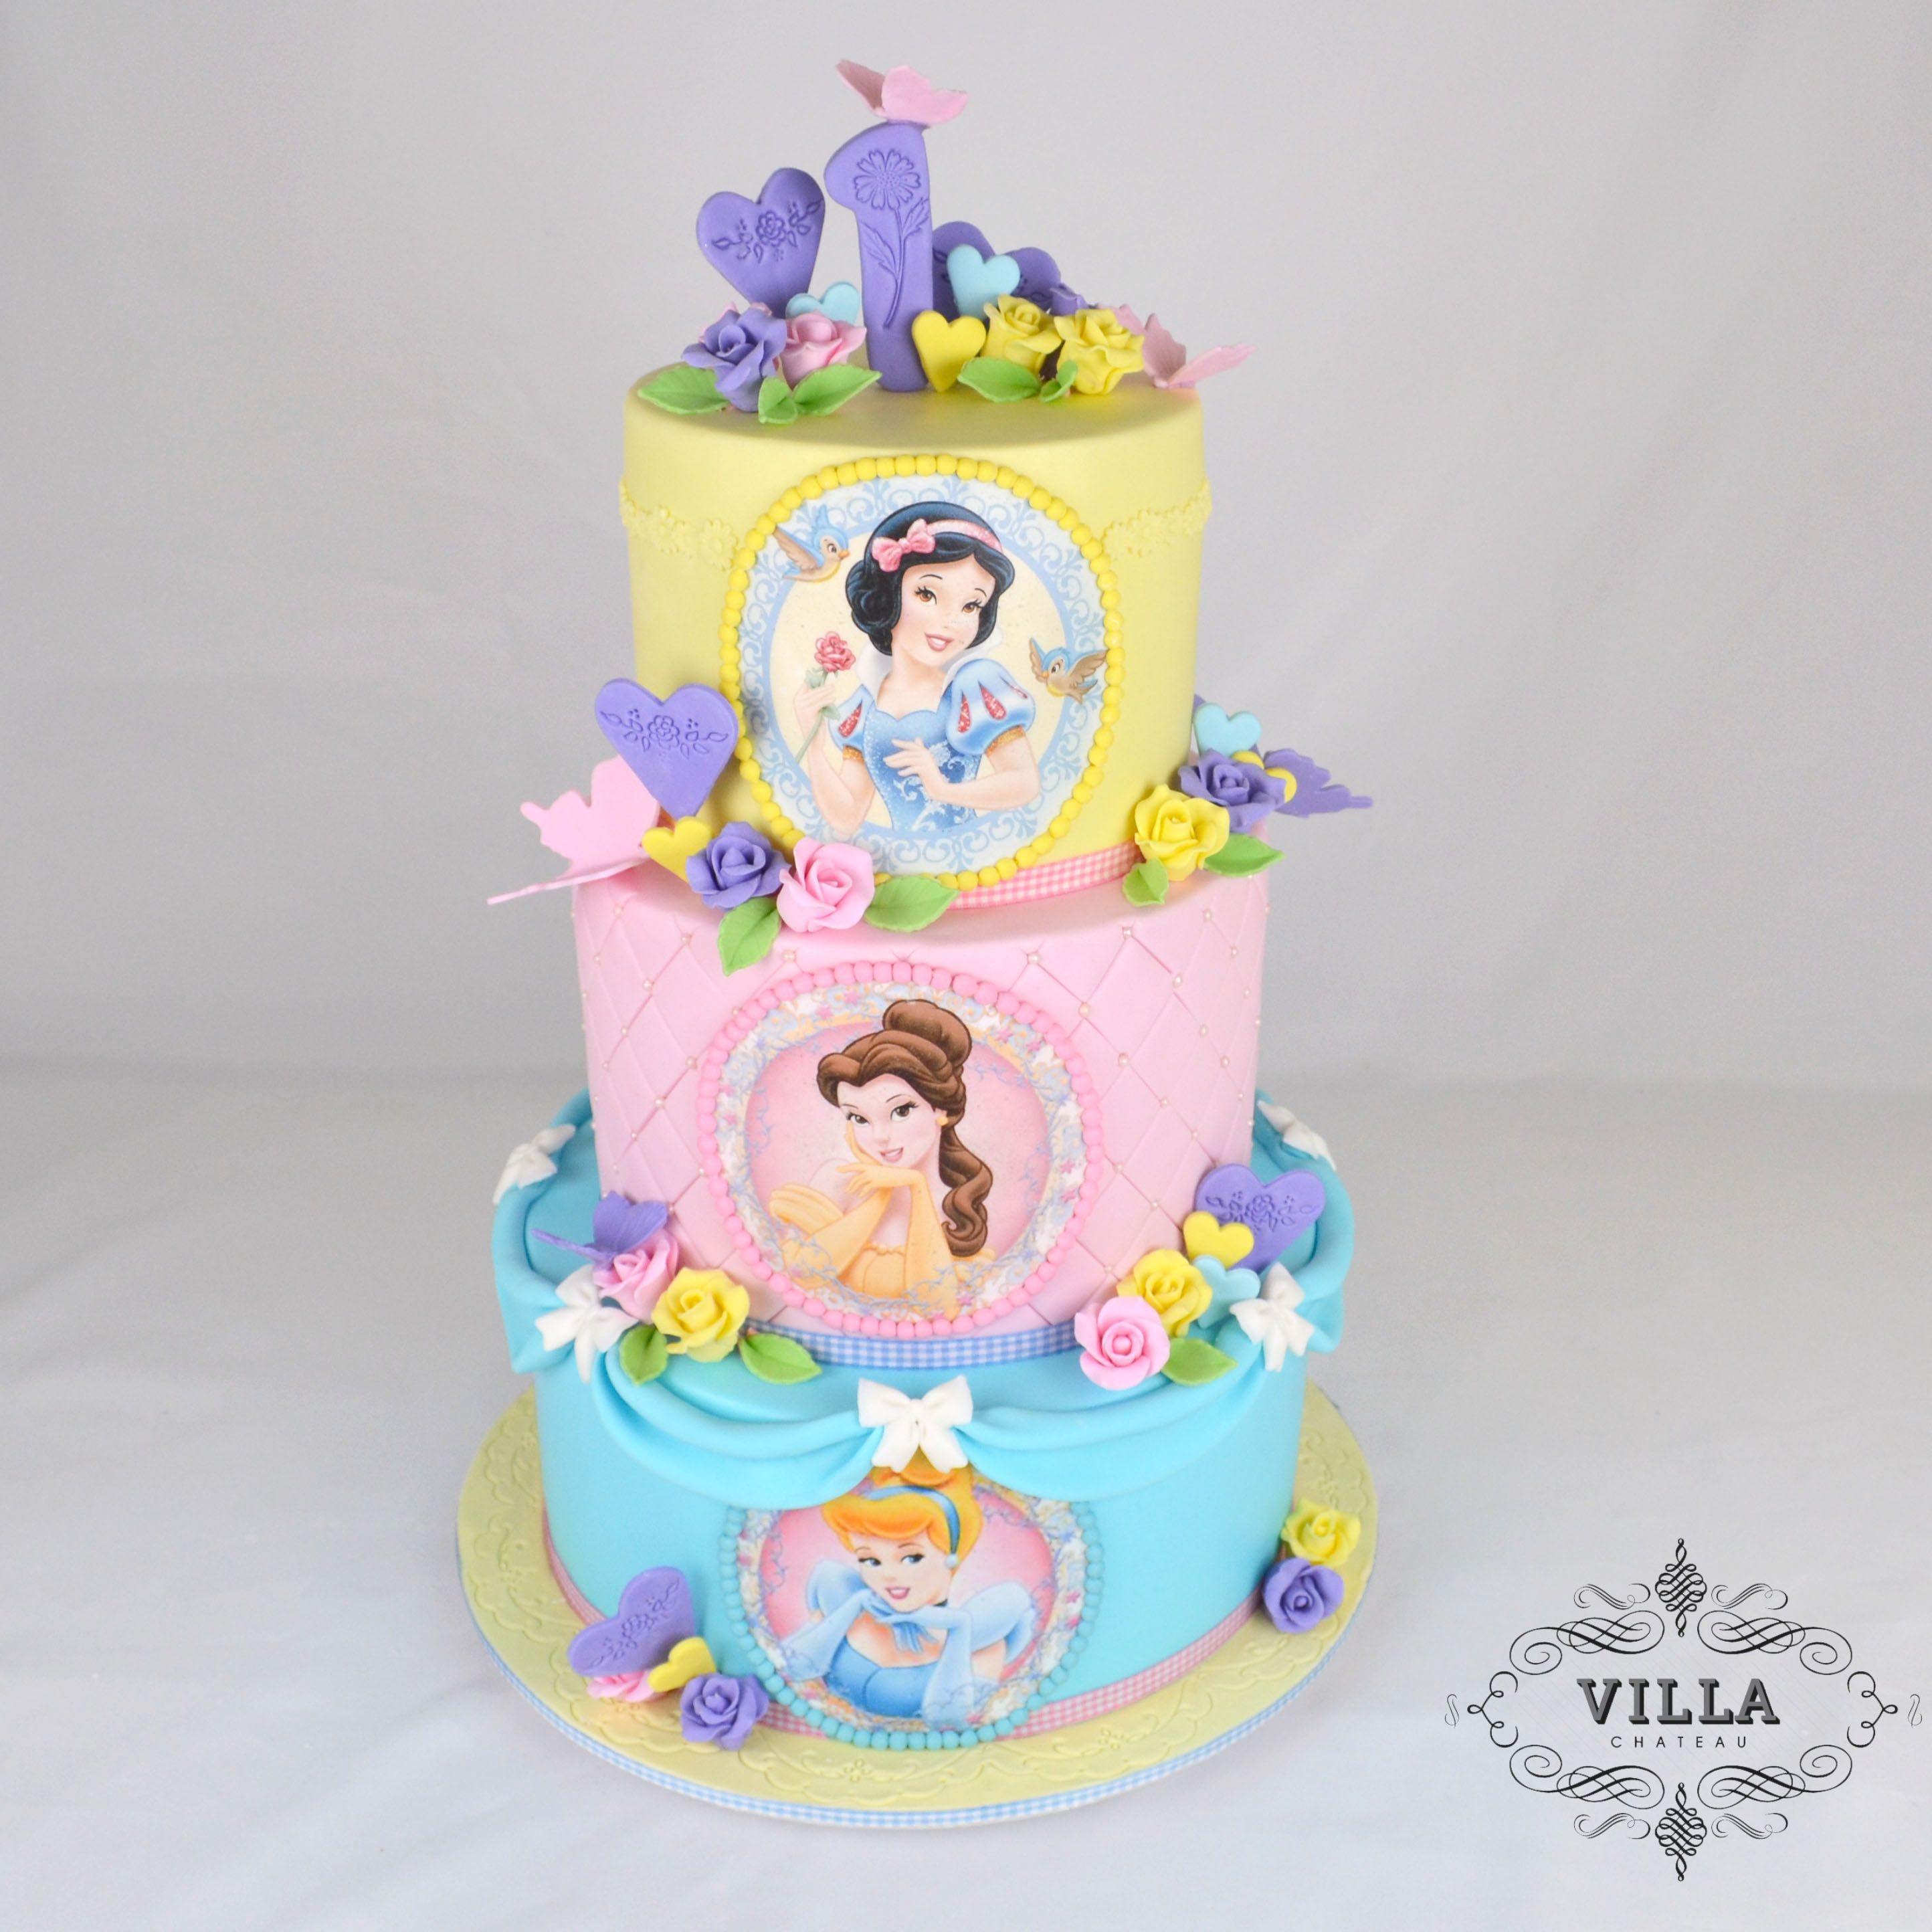 Tremendous 27 Exclusive Photo Of Disney Princess Birthday Cakes Birijus Com Personalised Birthday Cards Paralily Jamesorg